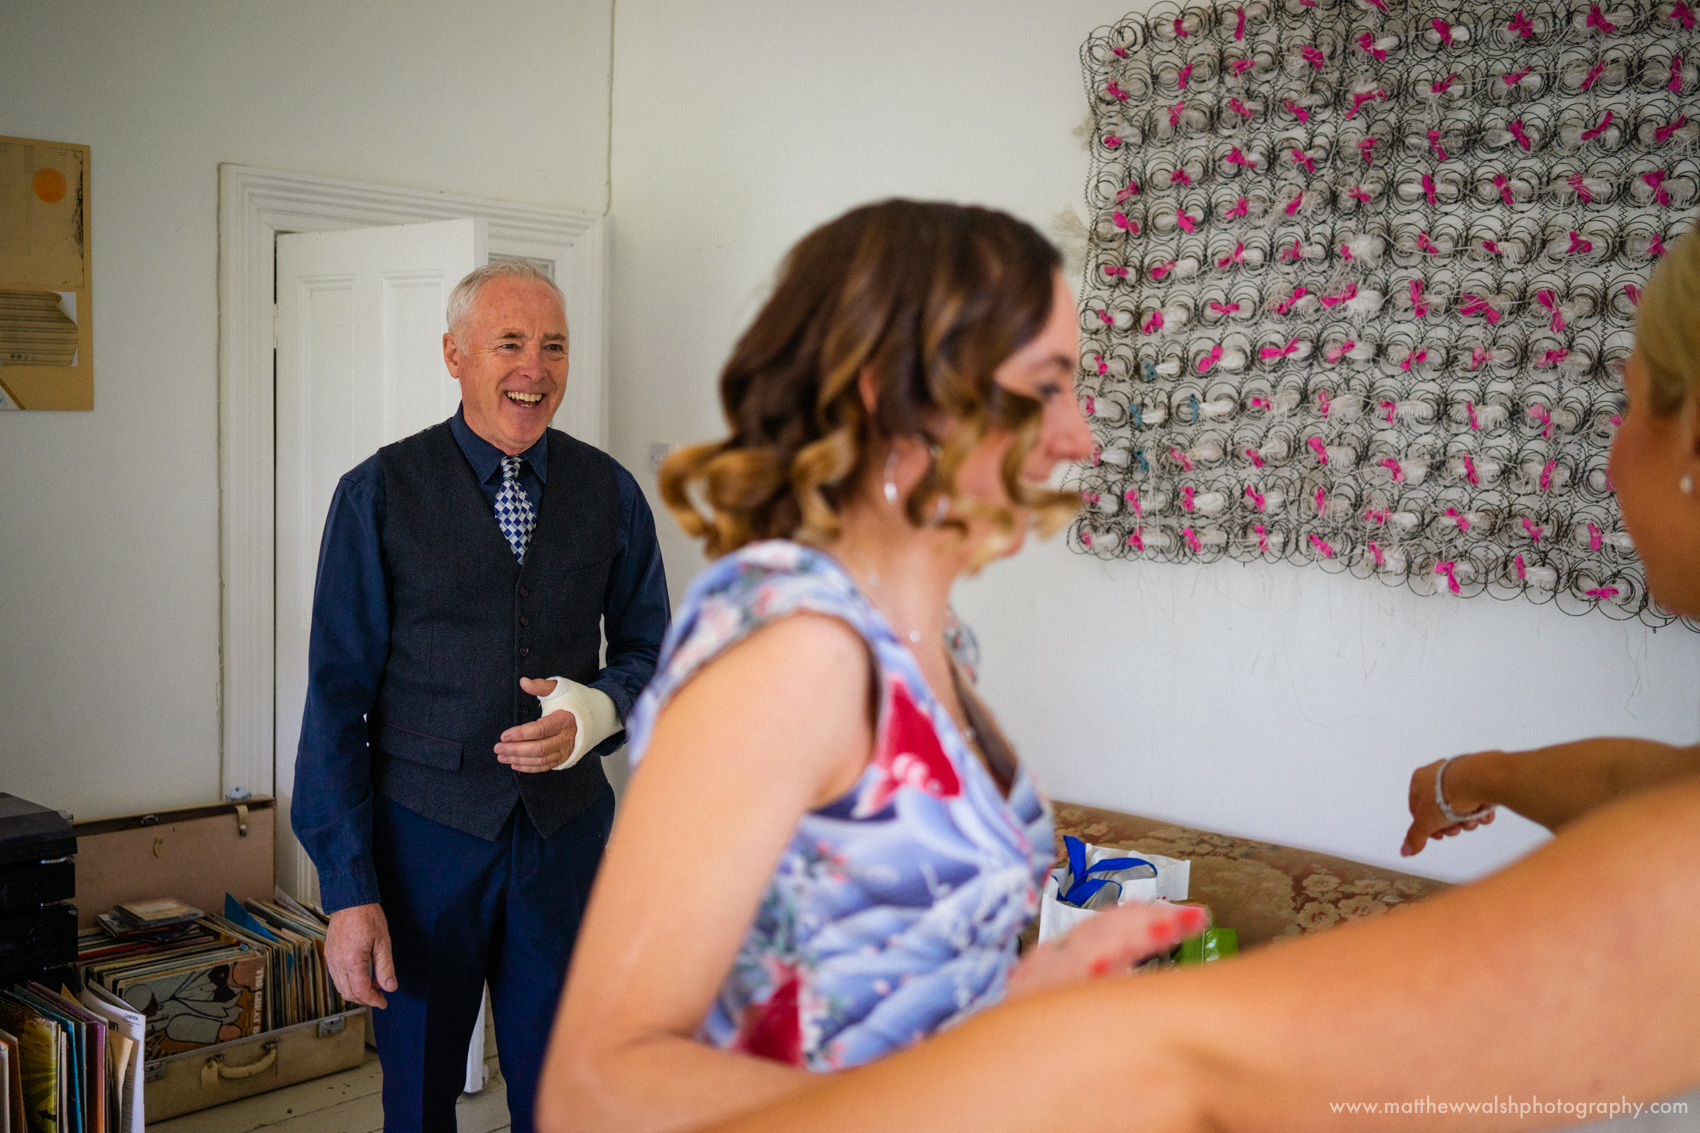 The father of the bride sees his daughter in her wedding dress for the first time